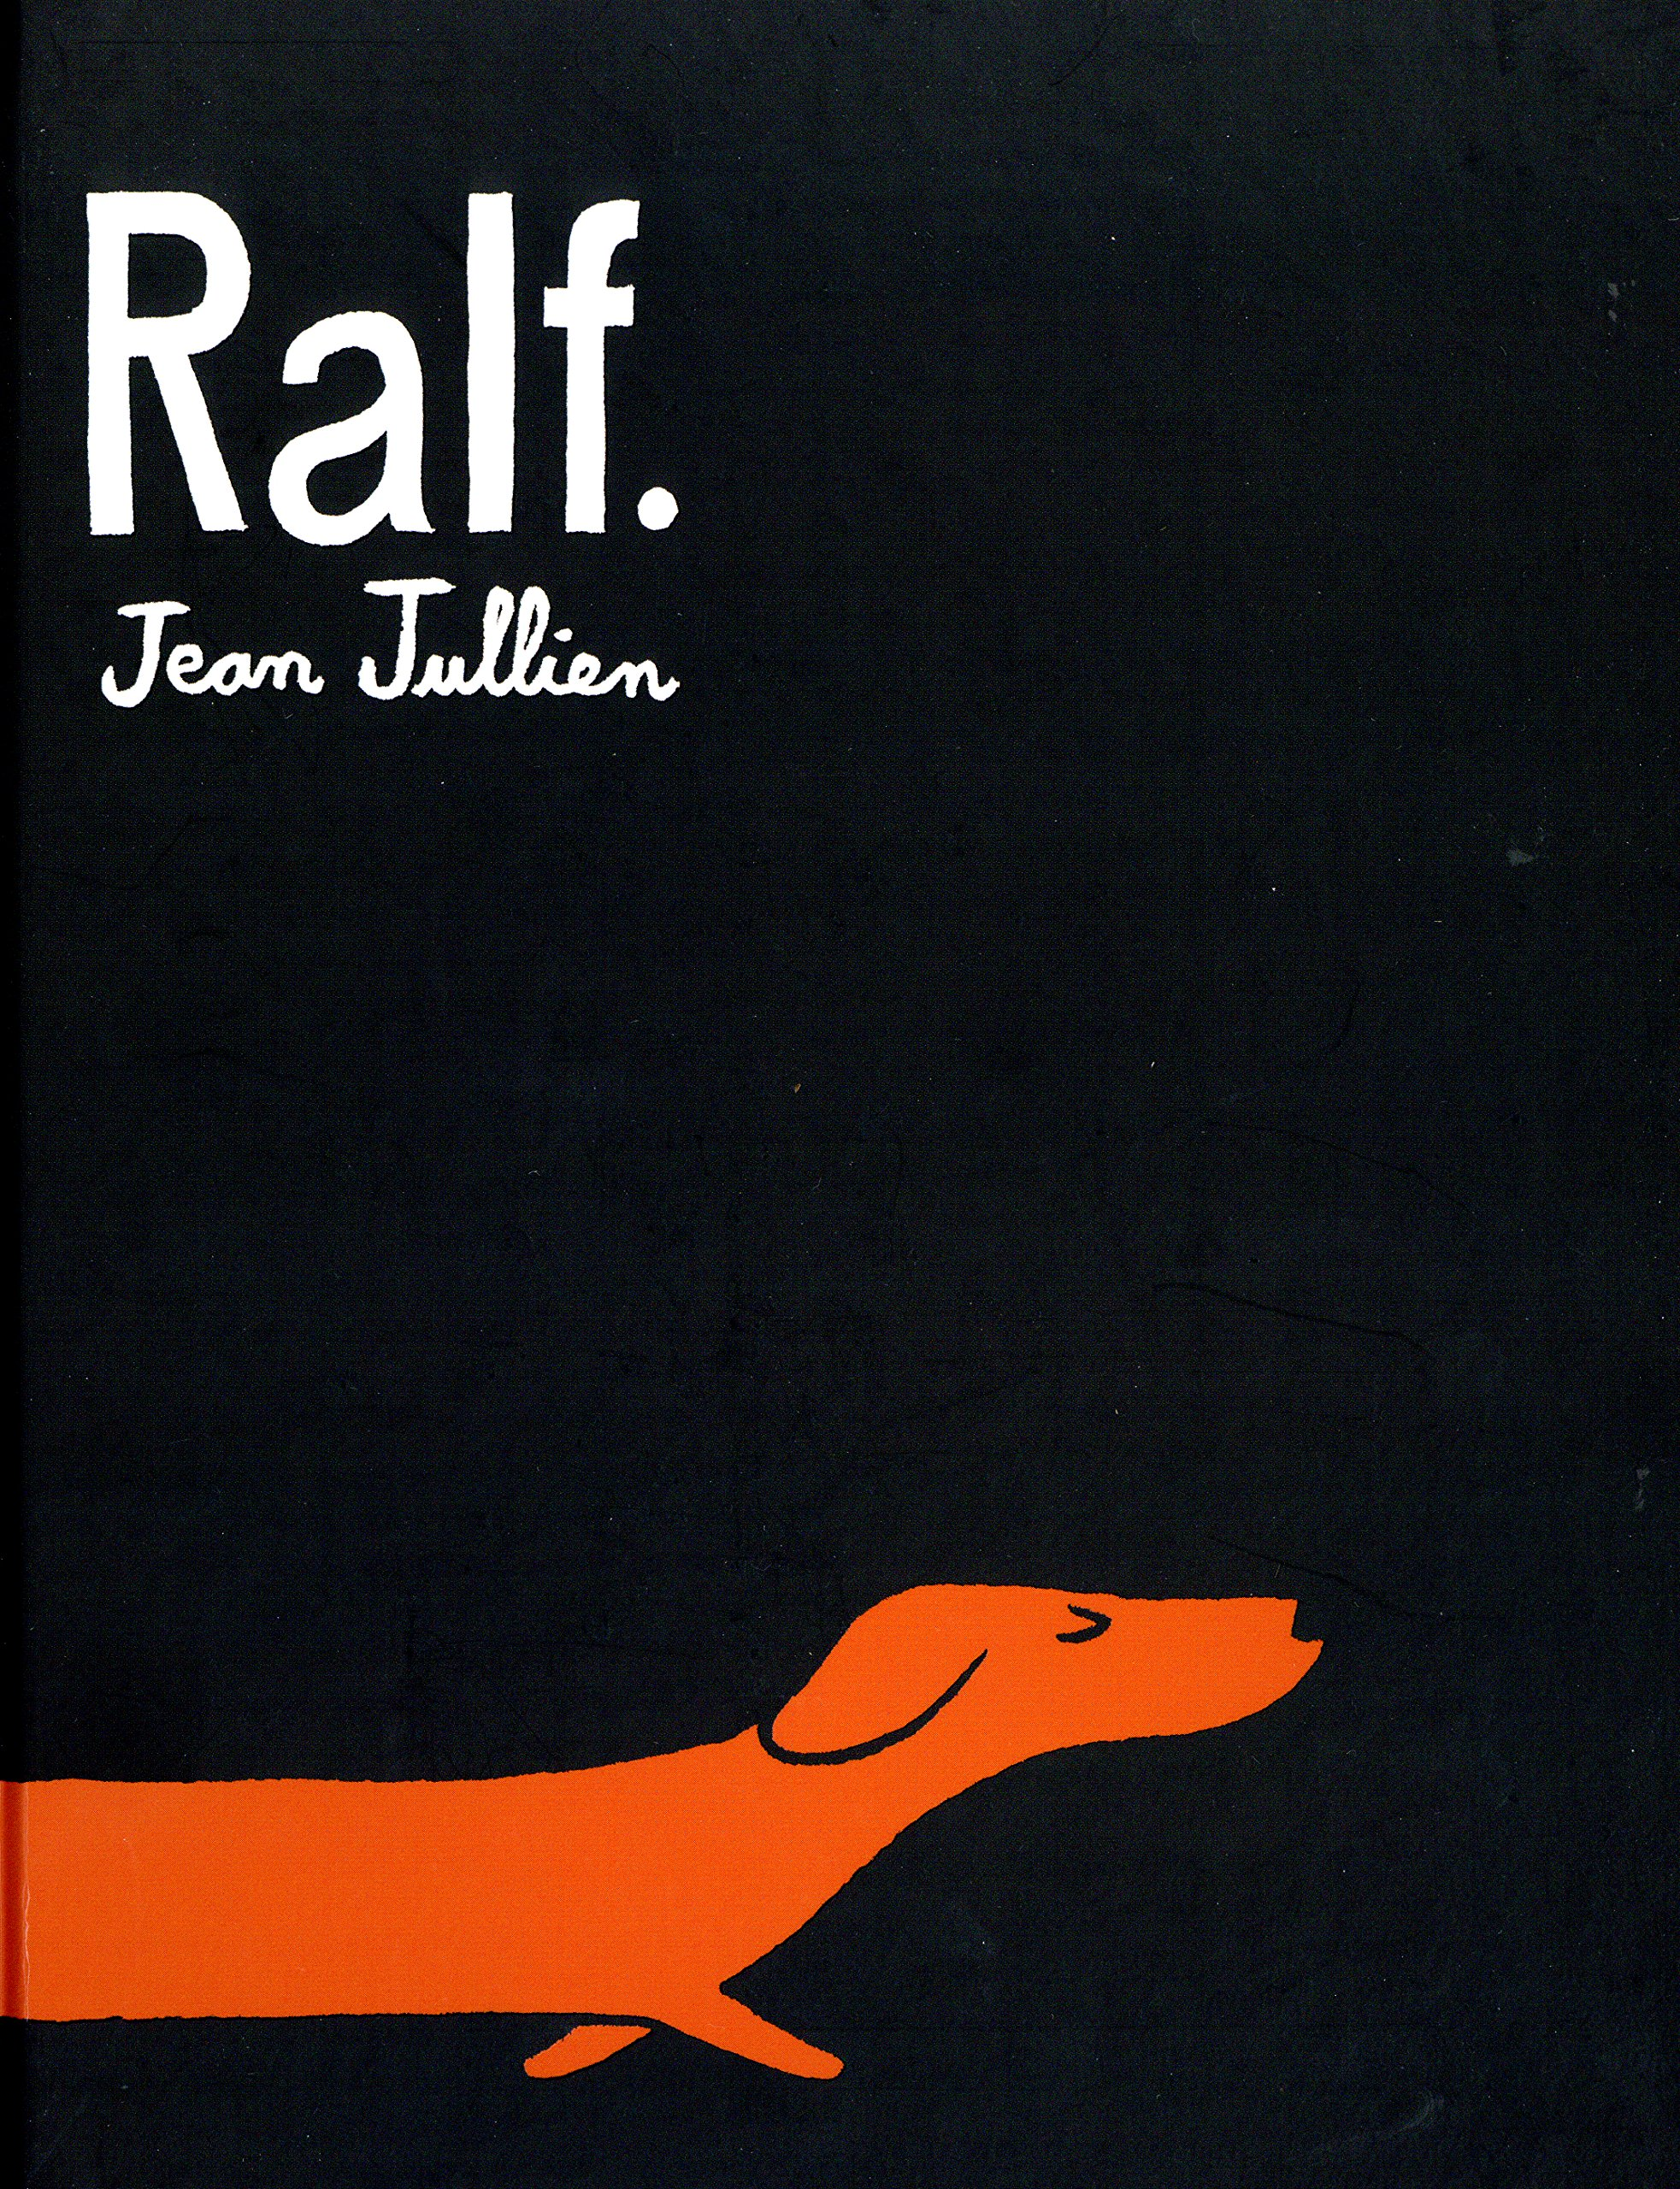 Ralf. (Spanish Edition) (Spanish) Hardcover – June 30, 2015